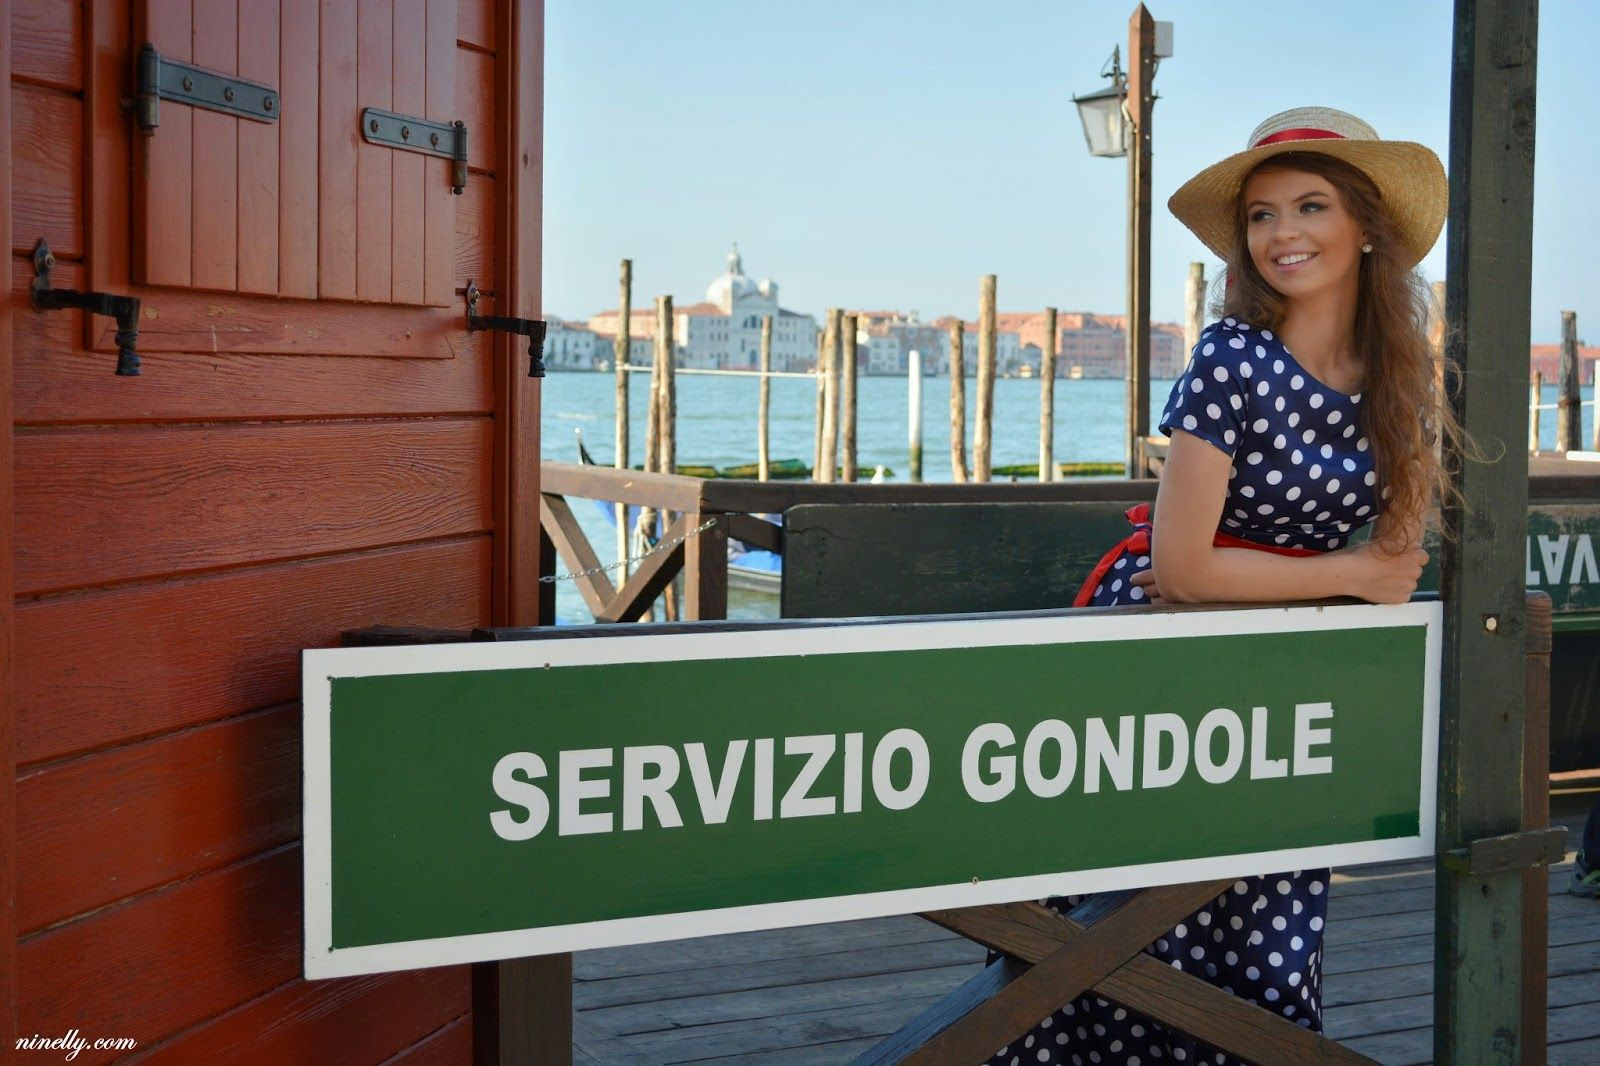 Venetian style outfit for photoshoot in Venice from fashion blogger Ninelly